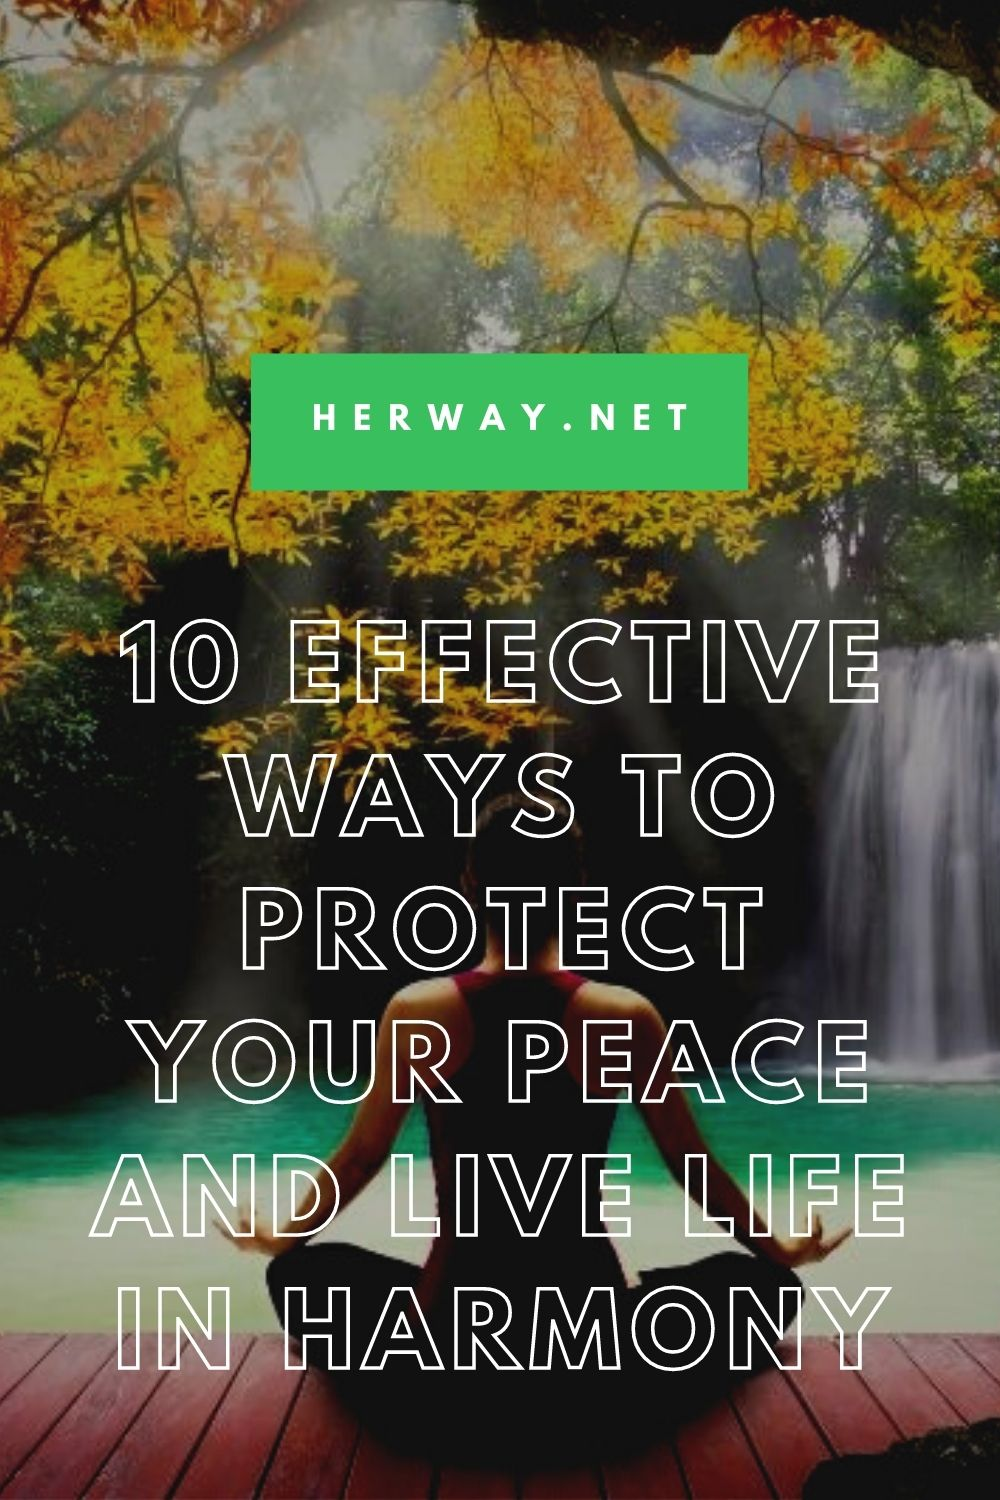 10 Effective Ways To Protect Your Peace And Live Life In Harmony